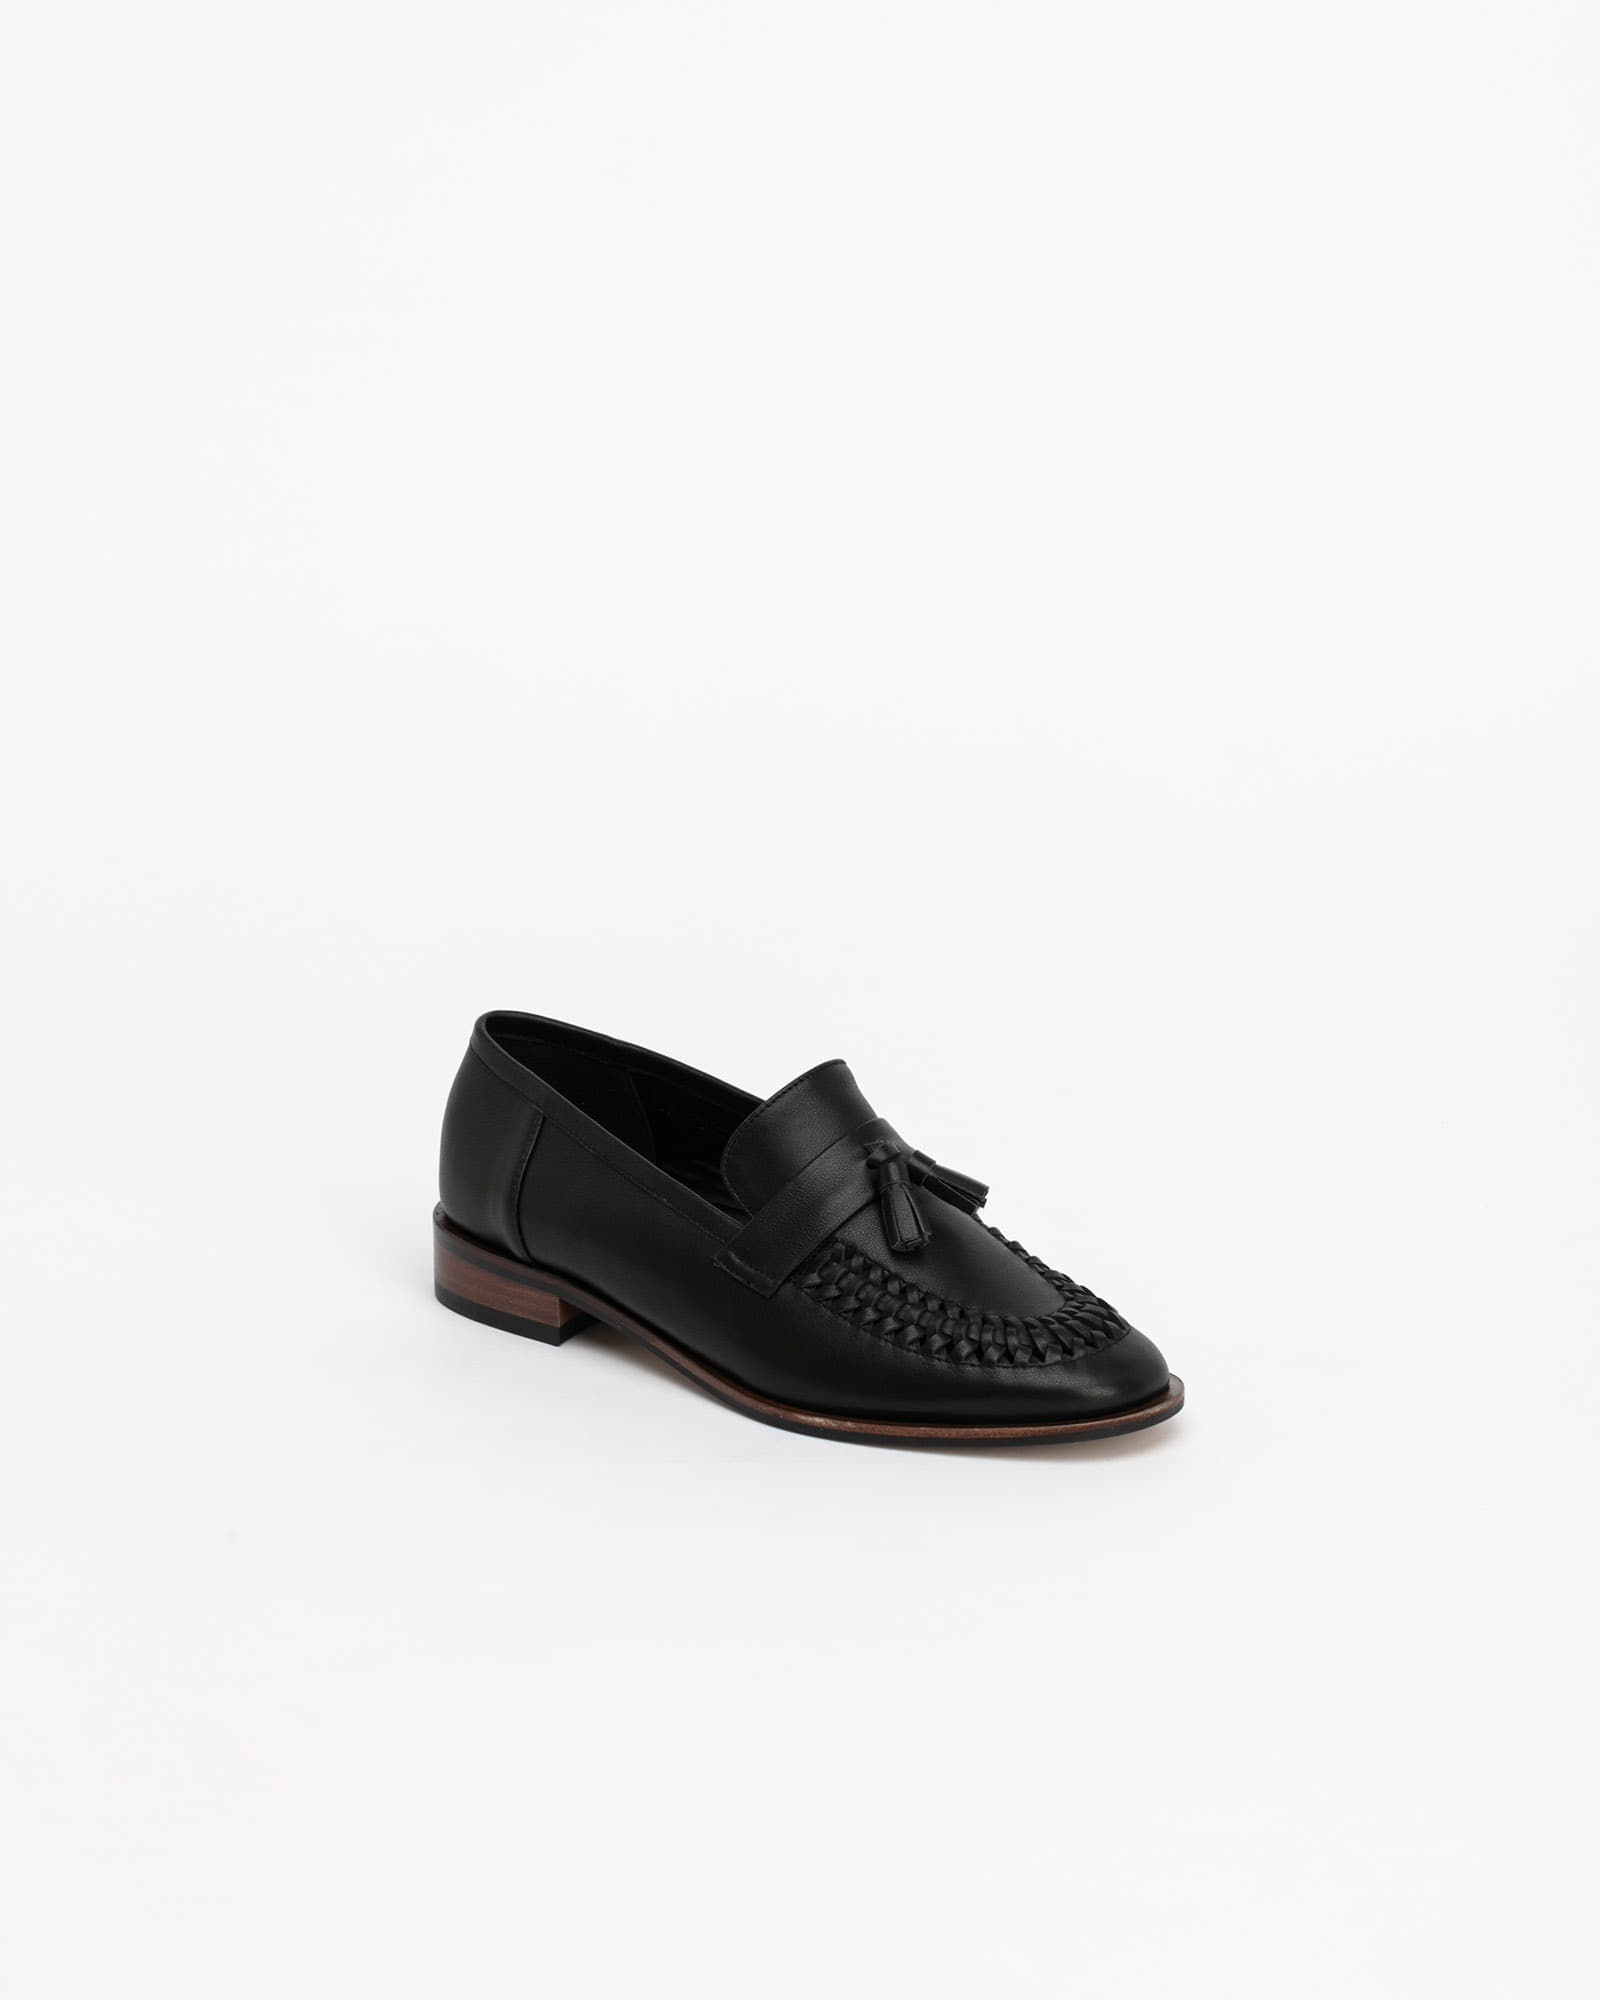 Mirage Soft Tasseled Loafers in Black